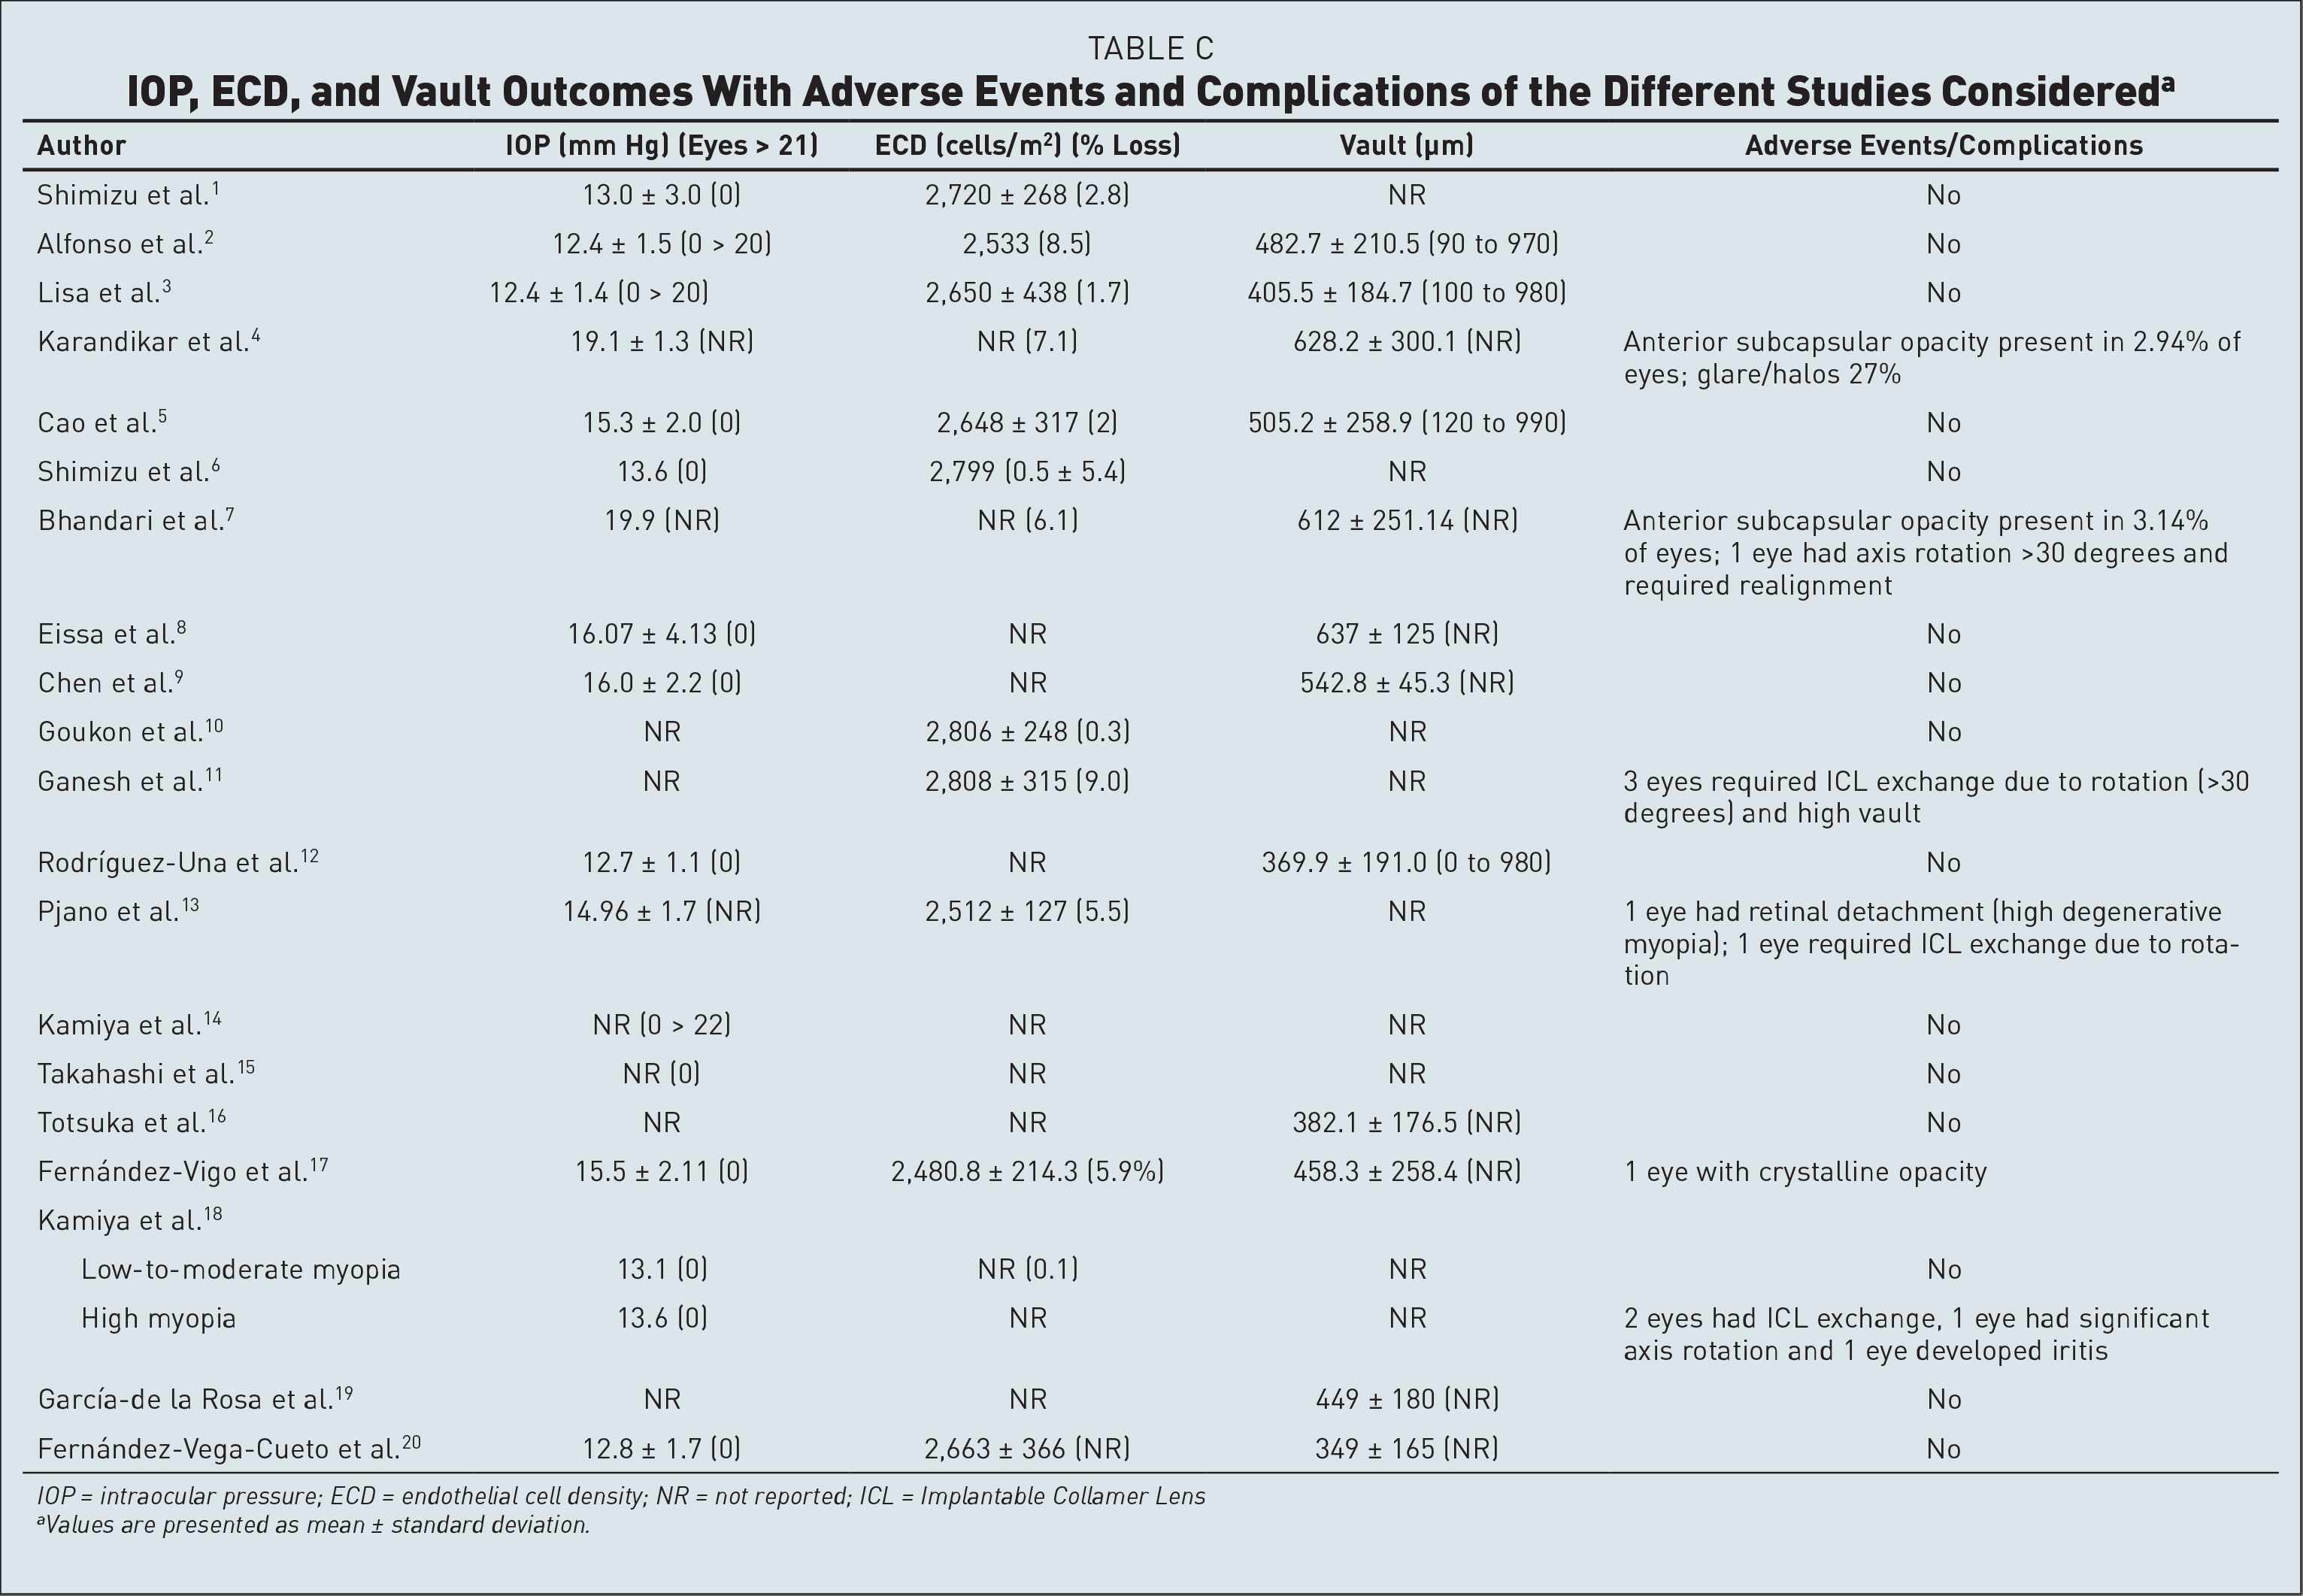 IOP, ECD, and Vault Outcomes With Adverse Events and Complications of the Different Studies Considereda